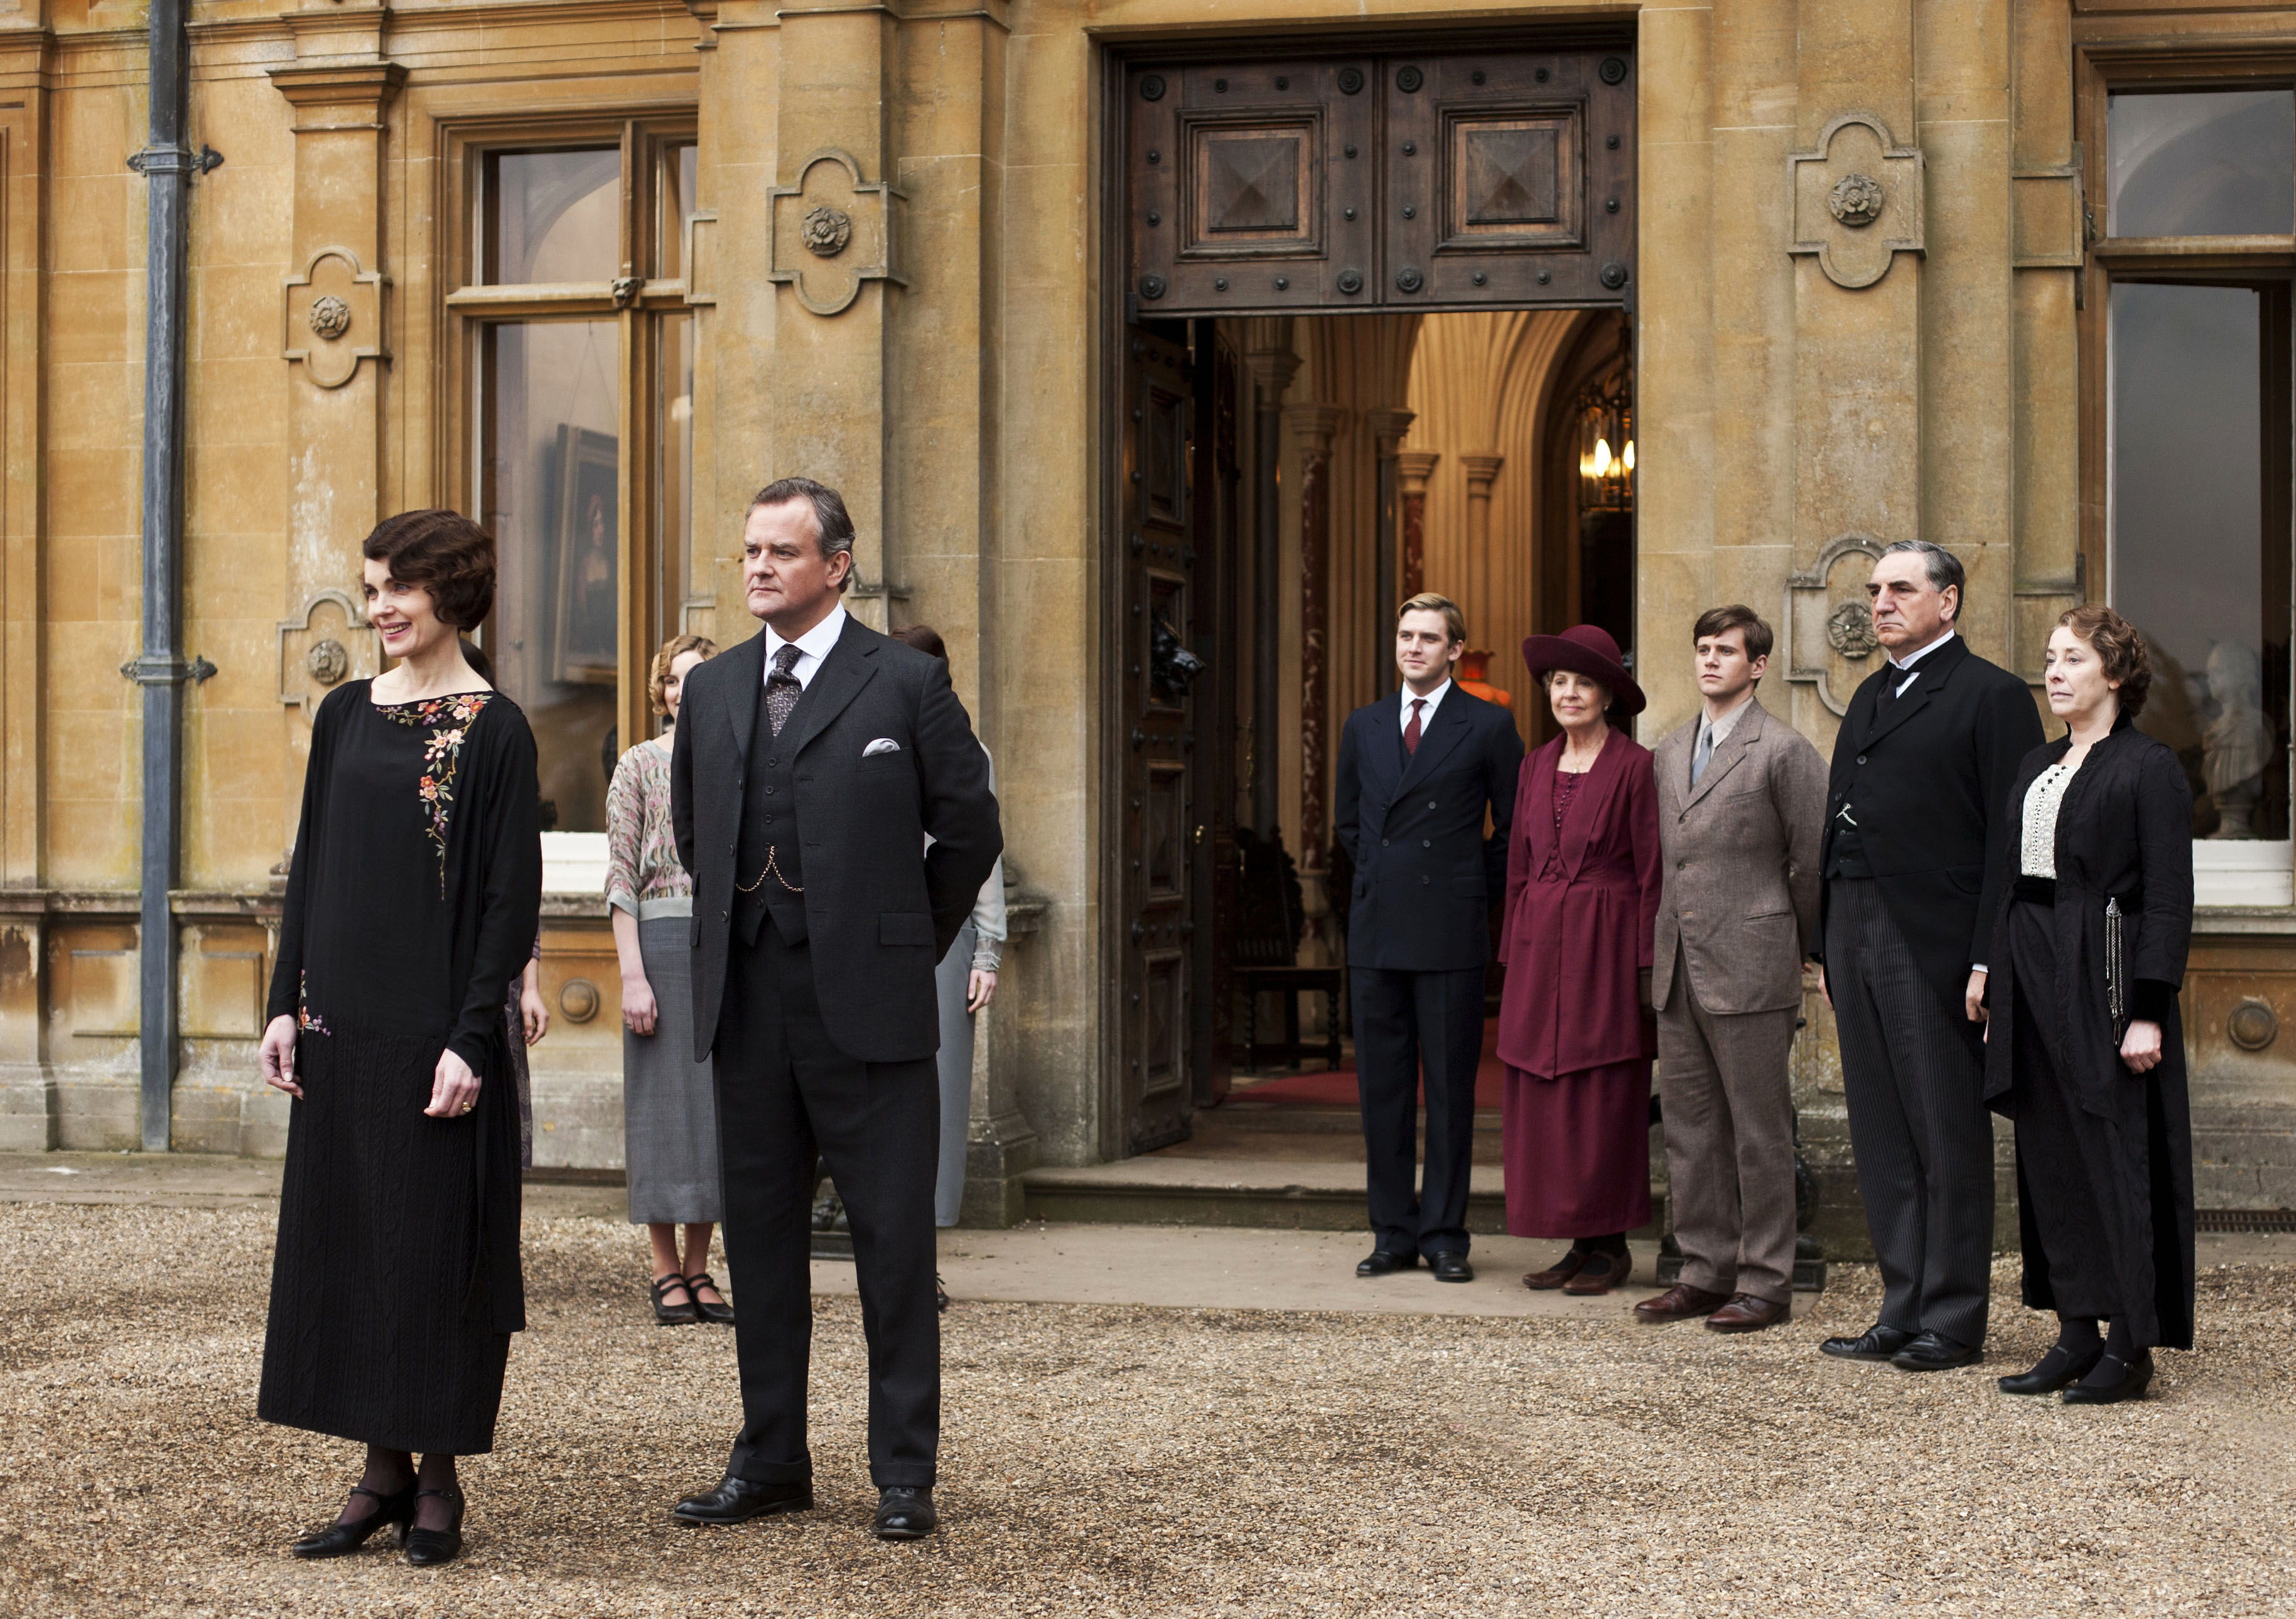 """This undated publicity photo provided by PBS shows, from left, Elizabeth McGovern as Lady Grantham, Hugh Bonneville as Lord Grantham, Dan Stevens as Matthew Crawley, Penelope Wilton as Isobel Crawley, Allen Leech as Tom Branson, Jim Carter as Mr. Carson, and Phyllis Logan as Mrs. Hughes, from the TV series, """"Downton Abbey."""" The show was nominated for a Golden Globe for best drama series on Thursday, Dec. 12, 2013. The 71st annual Golden Globes will air on Sunday, Jan. 12."""